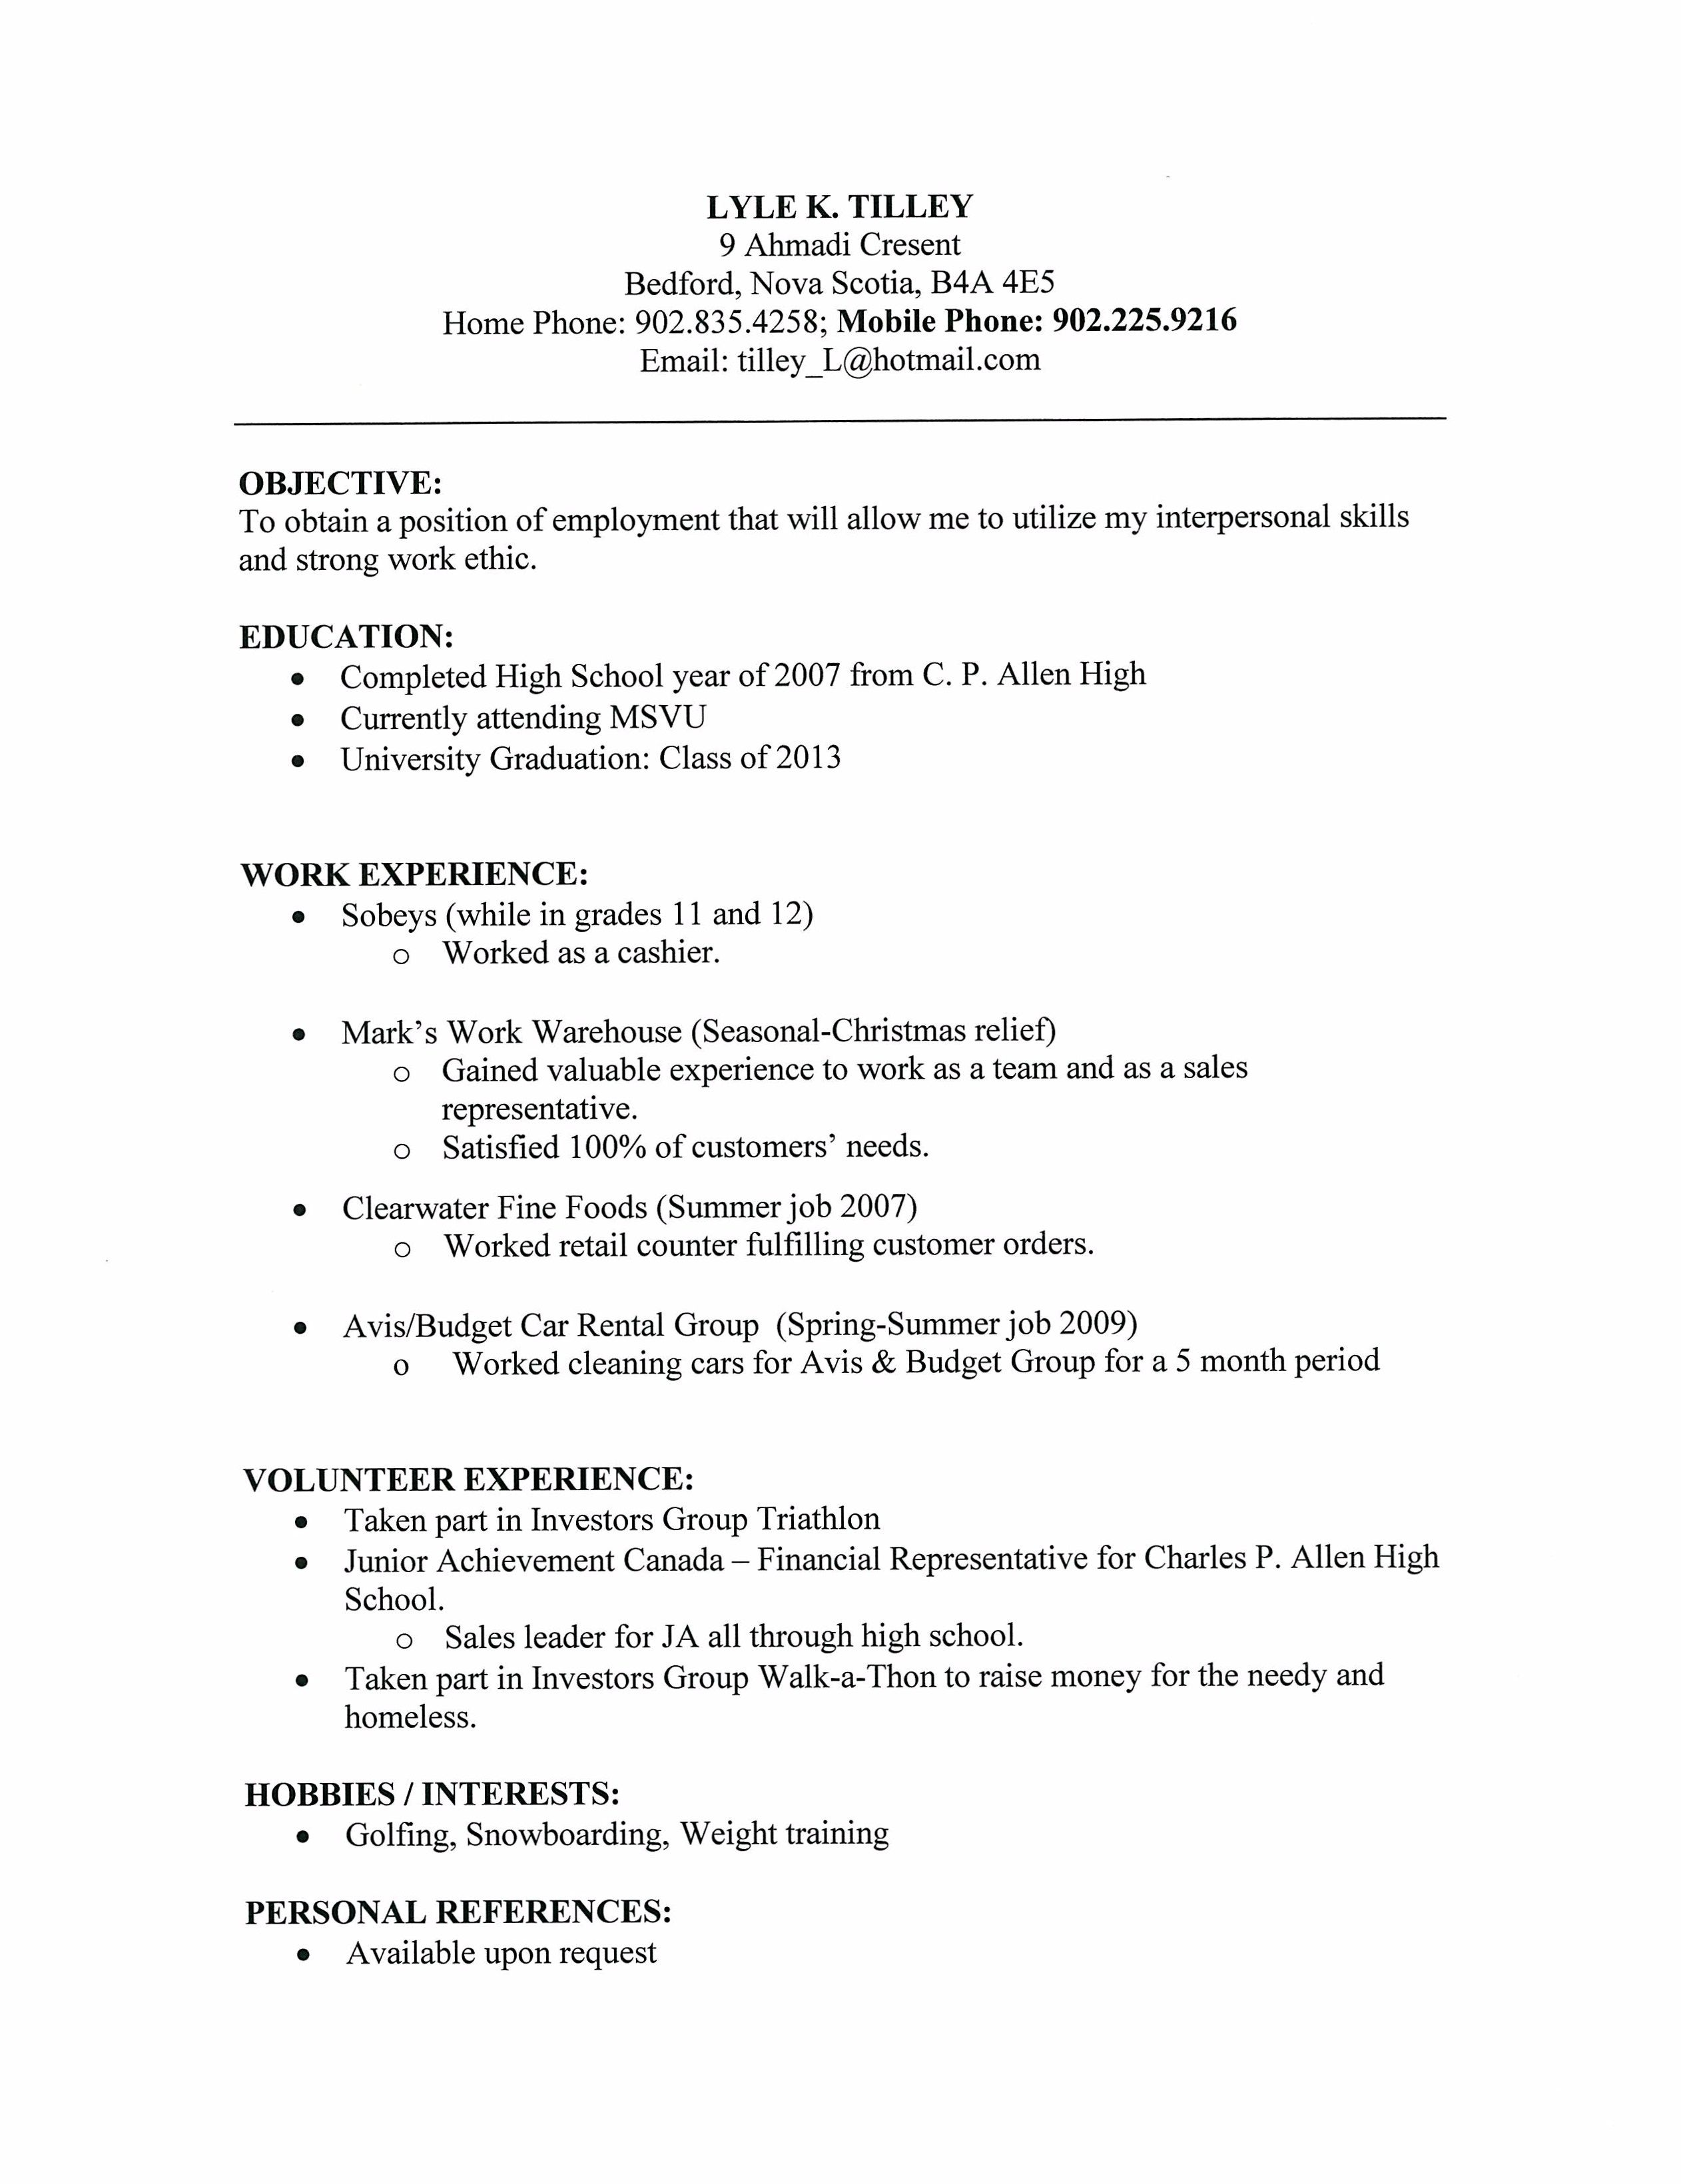 Beau Whatu0027s A Cover Letter For A Resume Whatu0027s A Cover Letter For A Resume,  Simple